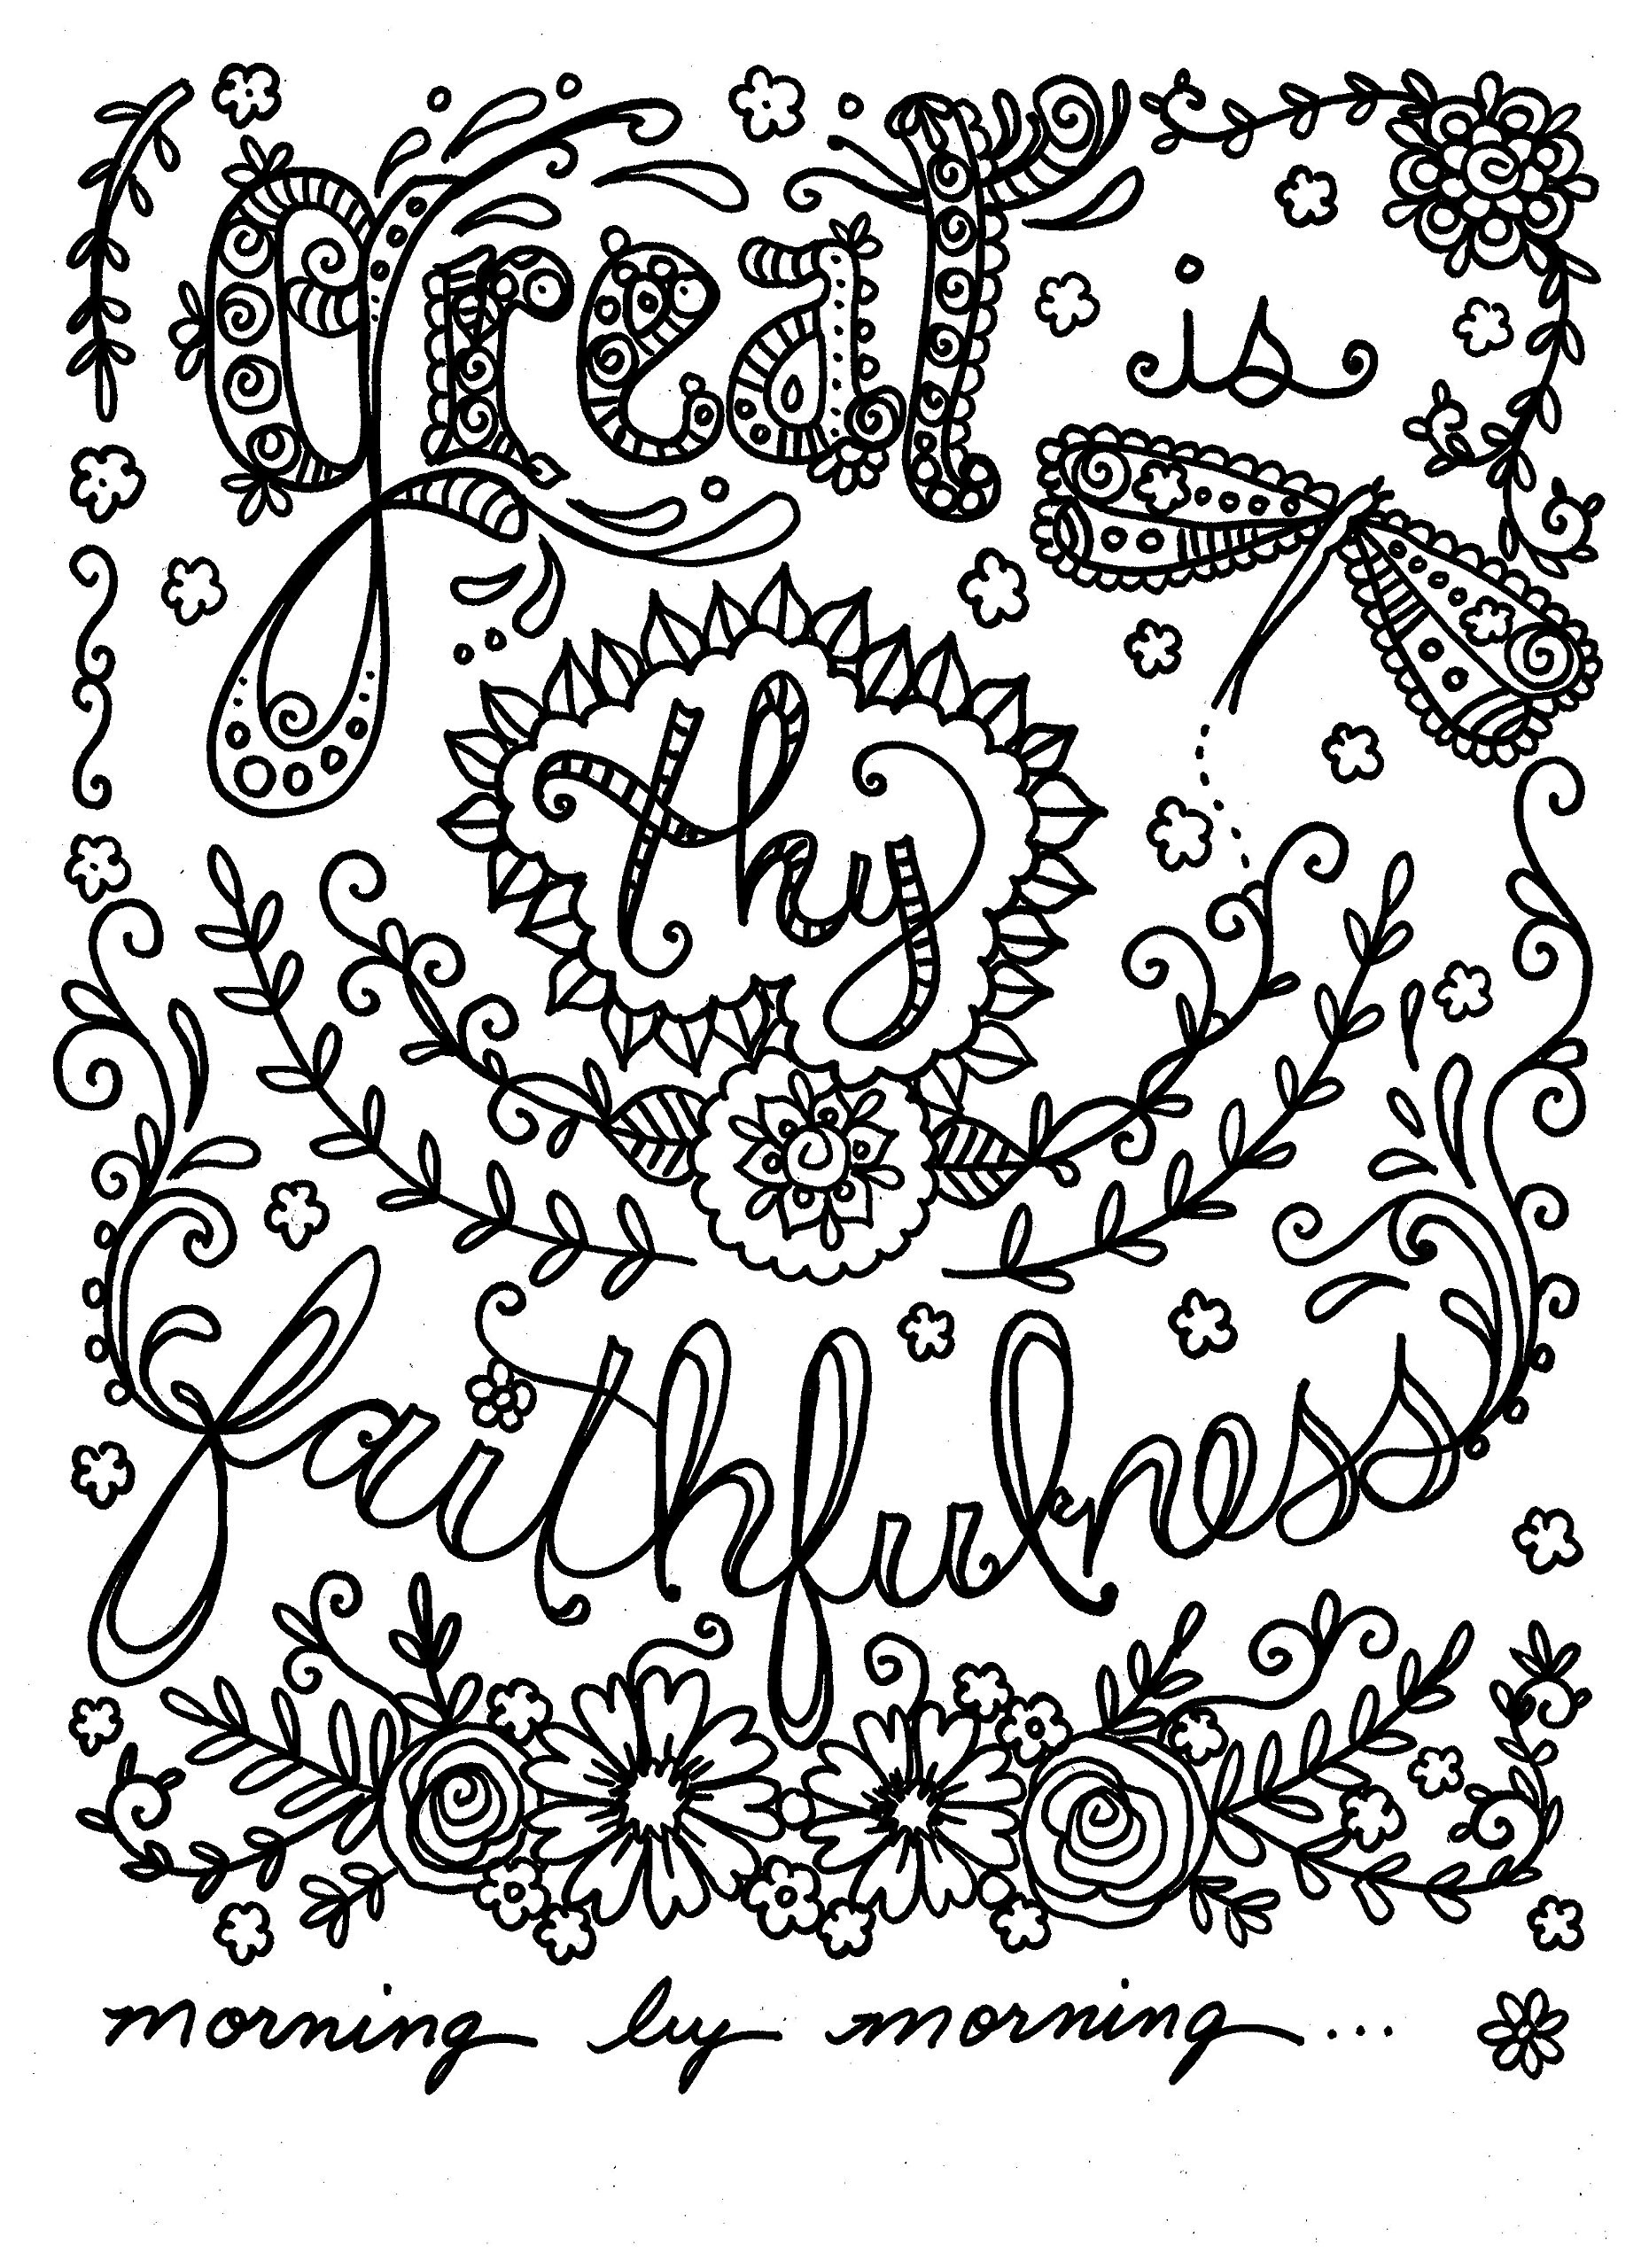 Scripture Coloring Pages For Adults  Bible Verse Coloring Pages for Adults Free Free Coloring